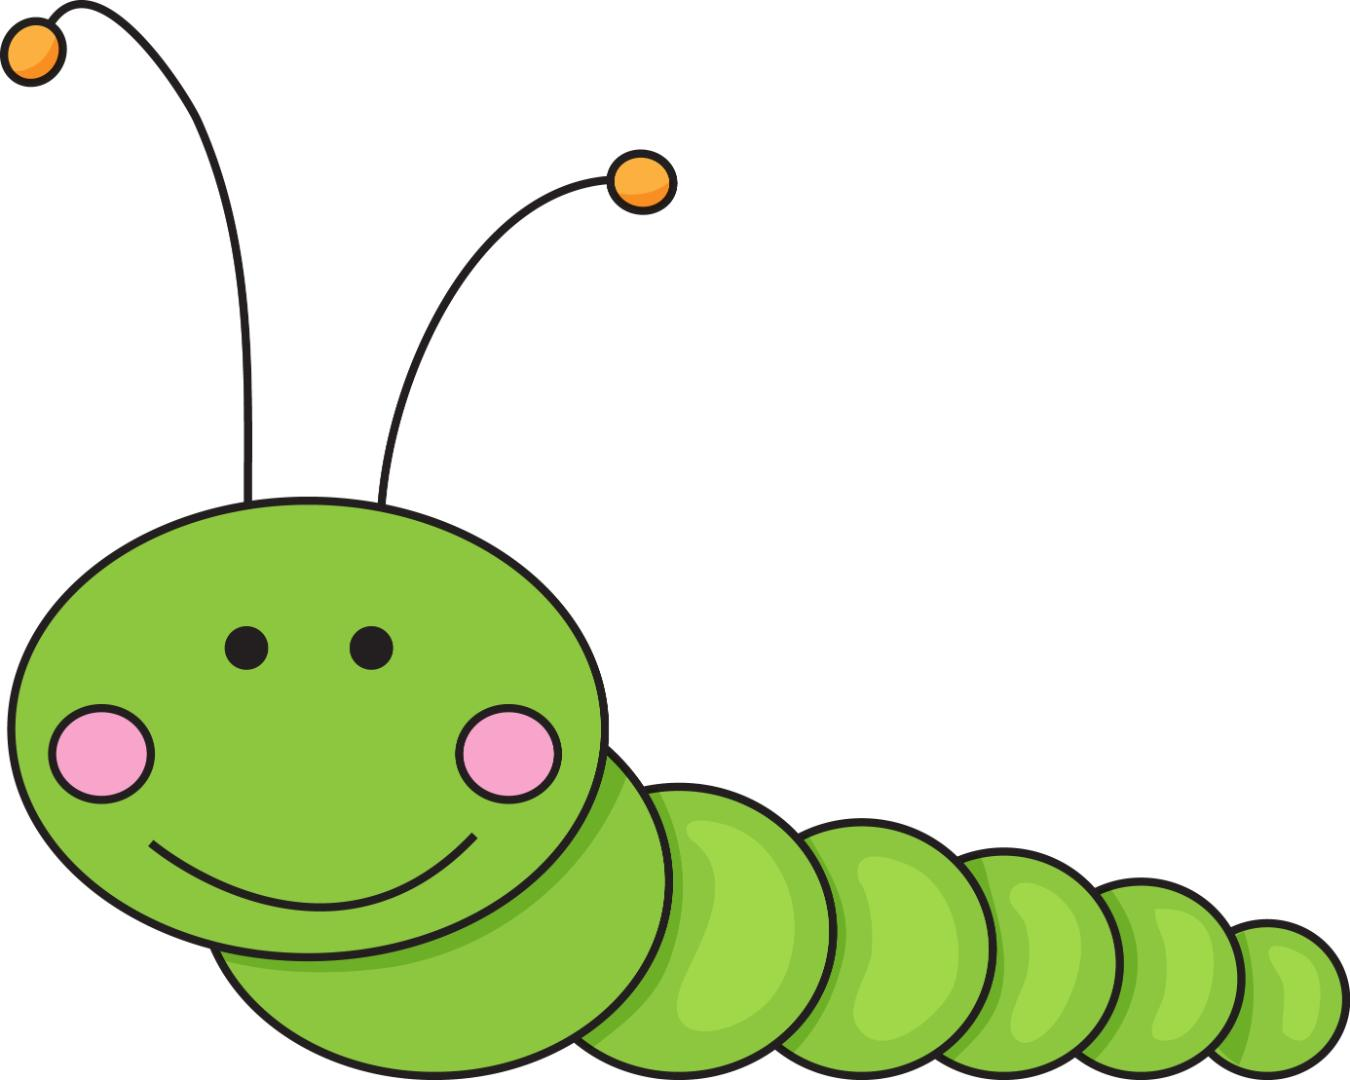 green-cute-caterpillar-clipart-the-cliparts-throughout-cute-caterpillar-clipart[1]